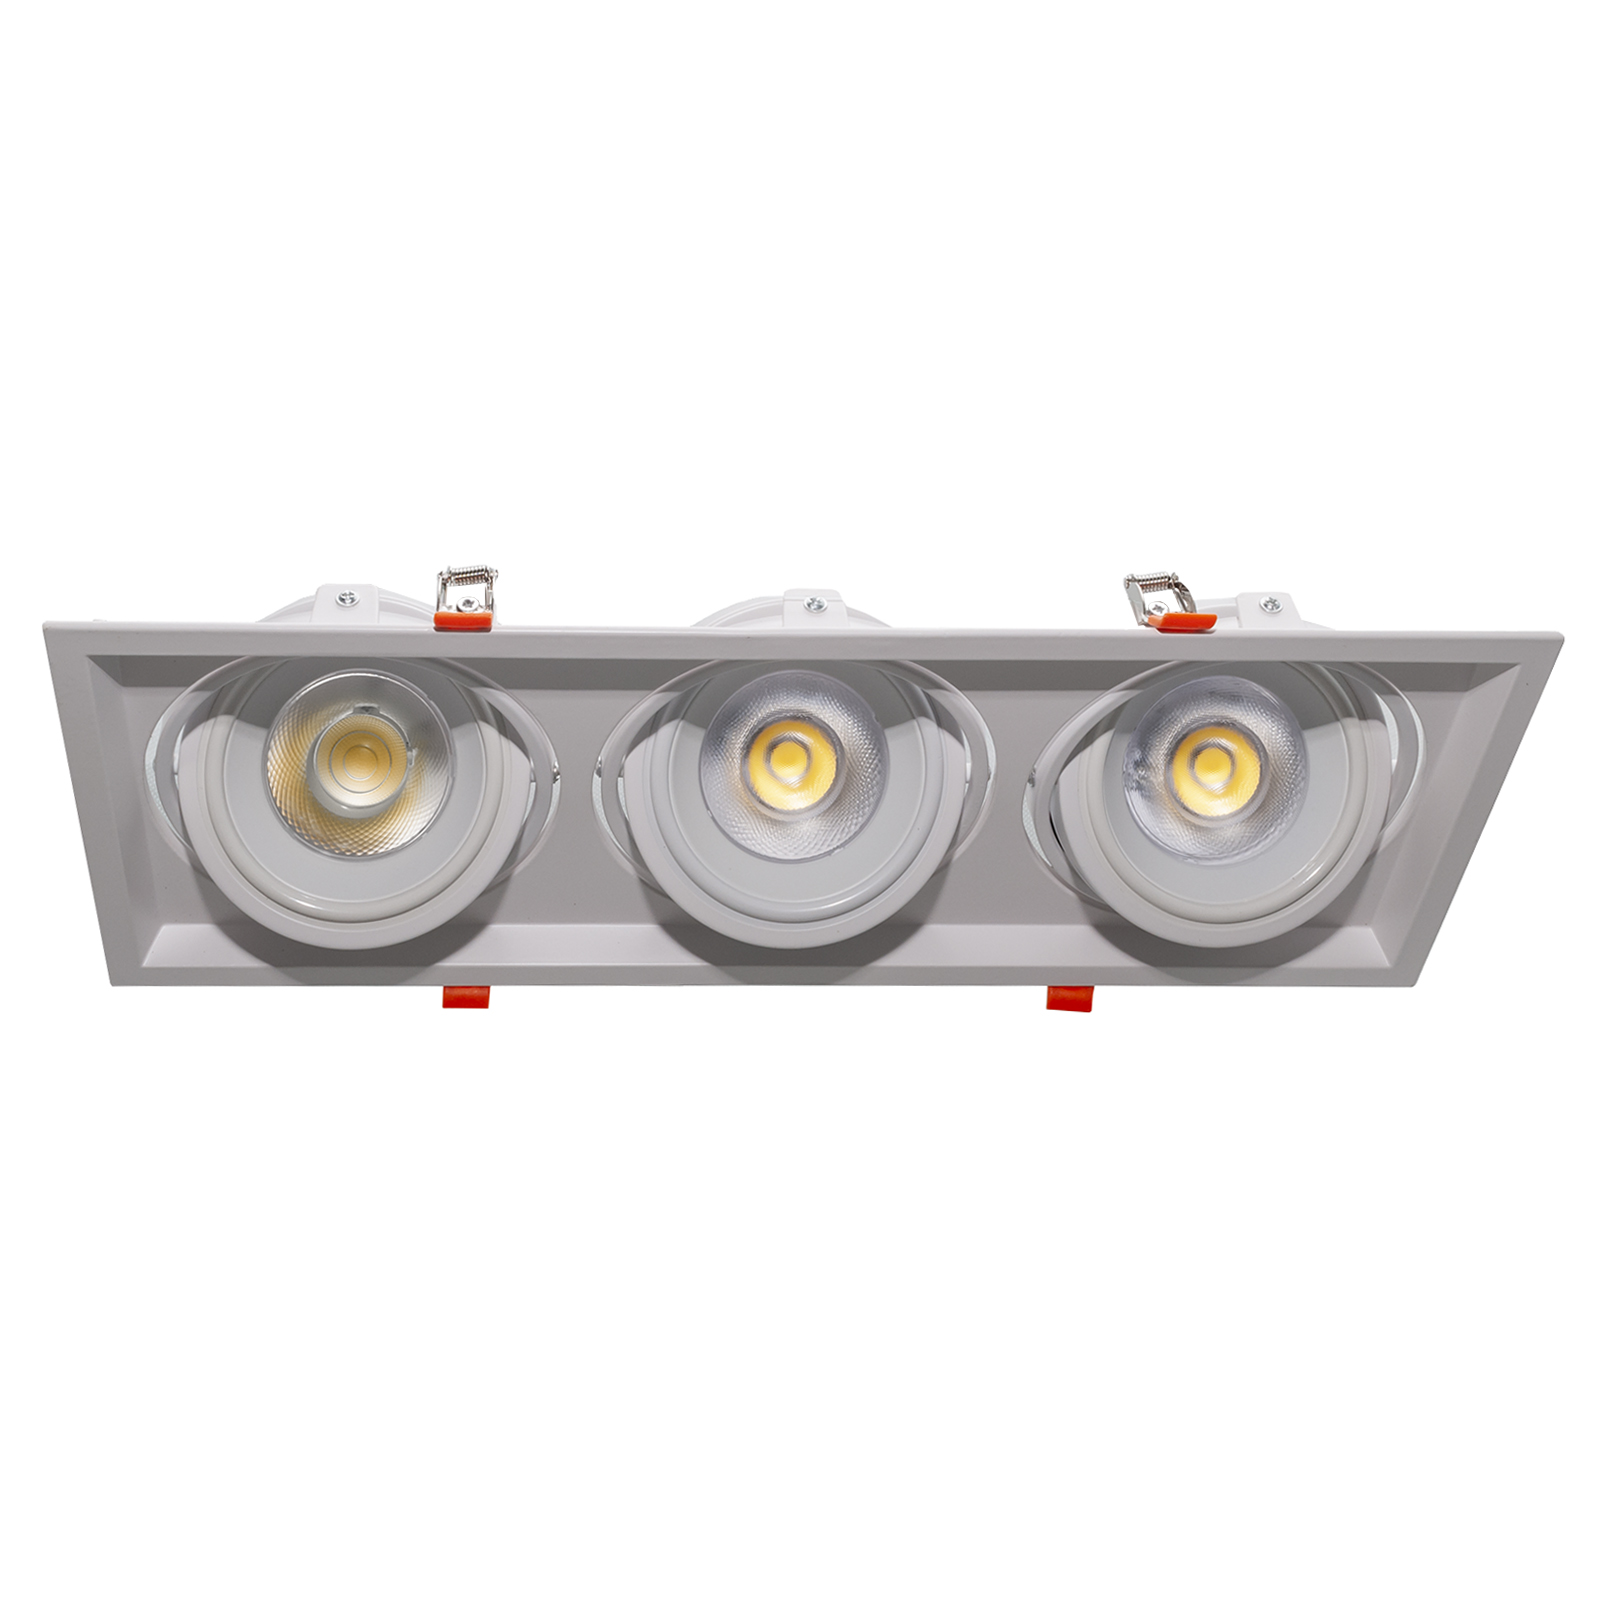 Spotlight 3 LED lamps 90W AR111 recessed lights office shop windows 230V 8100lm